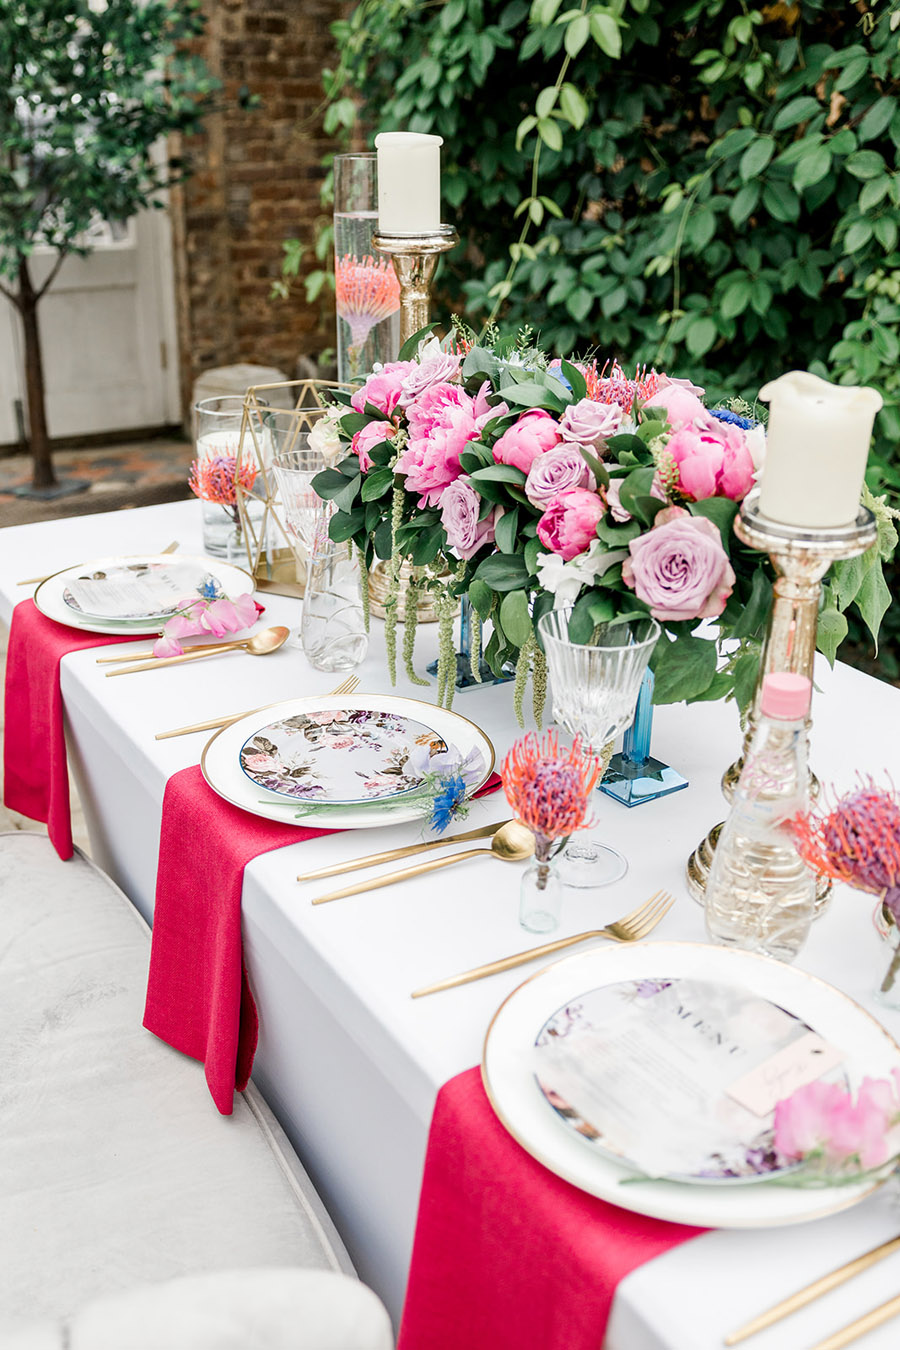 Modern intimate wedding styling inspiration from Slindon House, image credit Kelsie Scully (12)